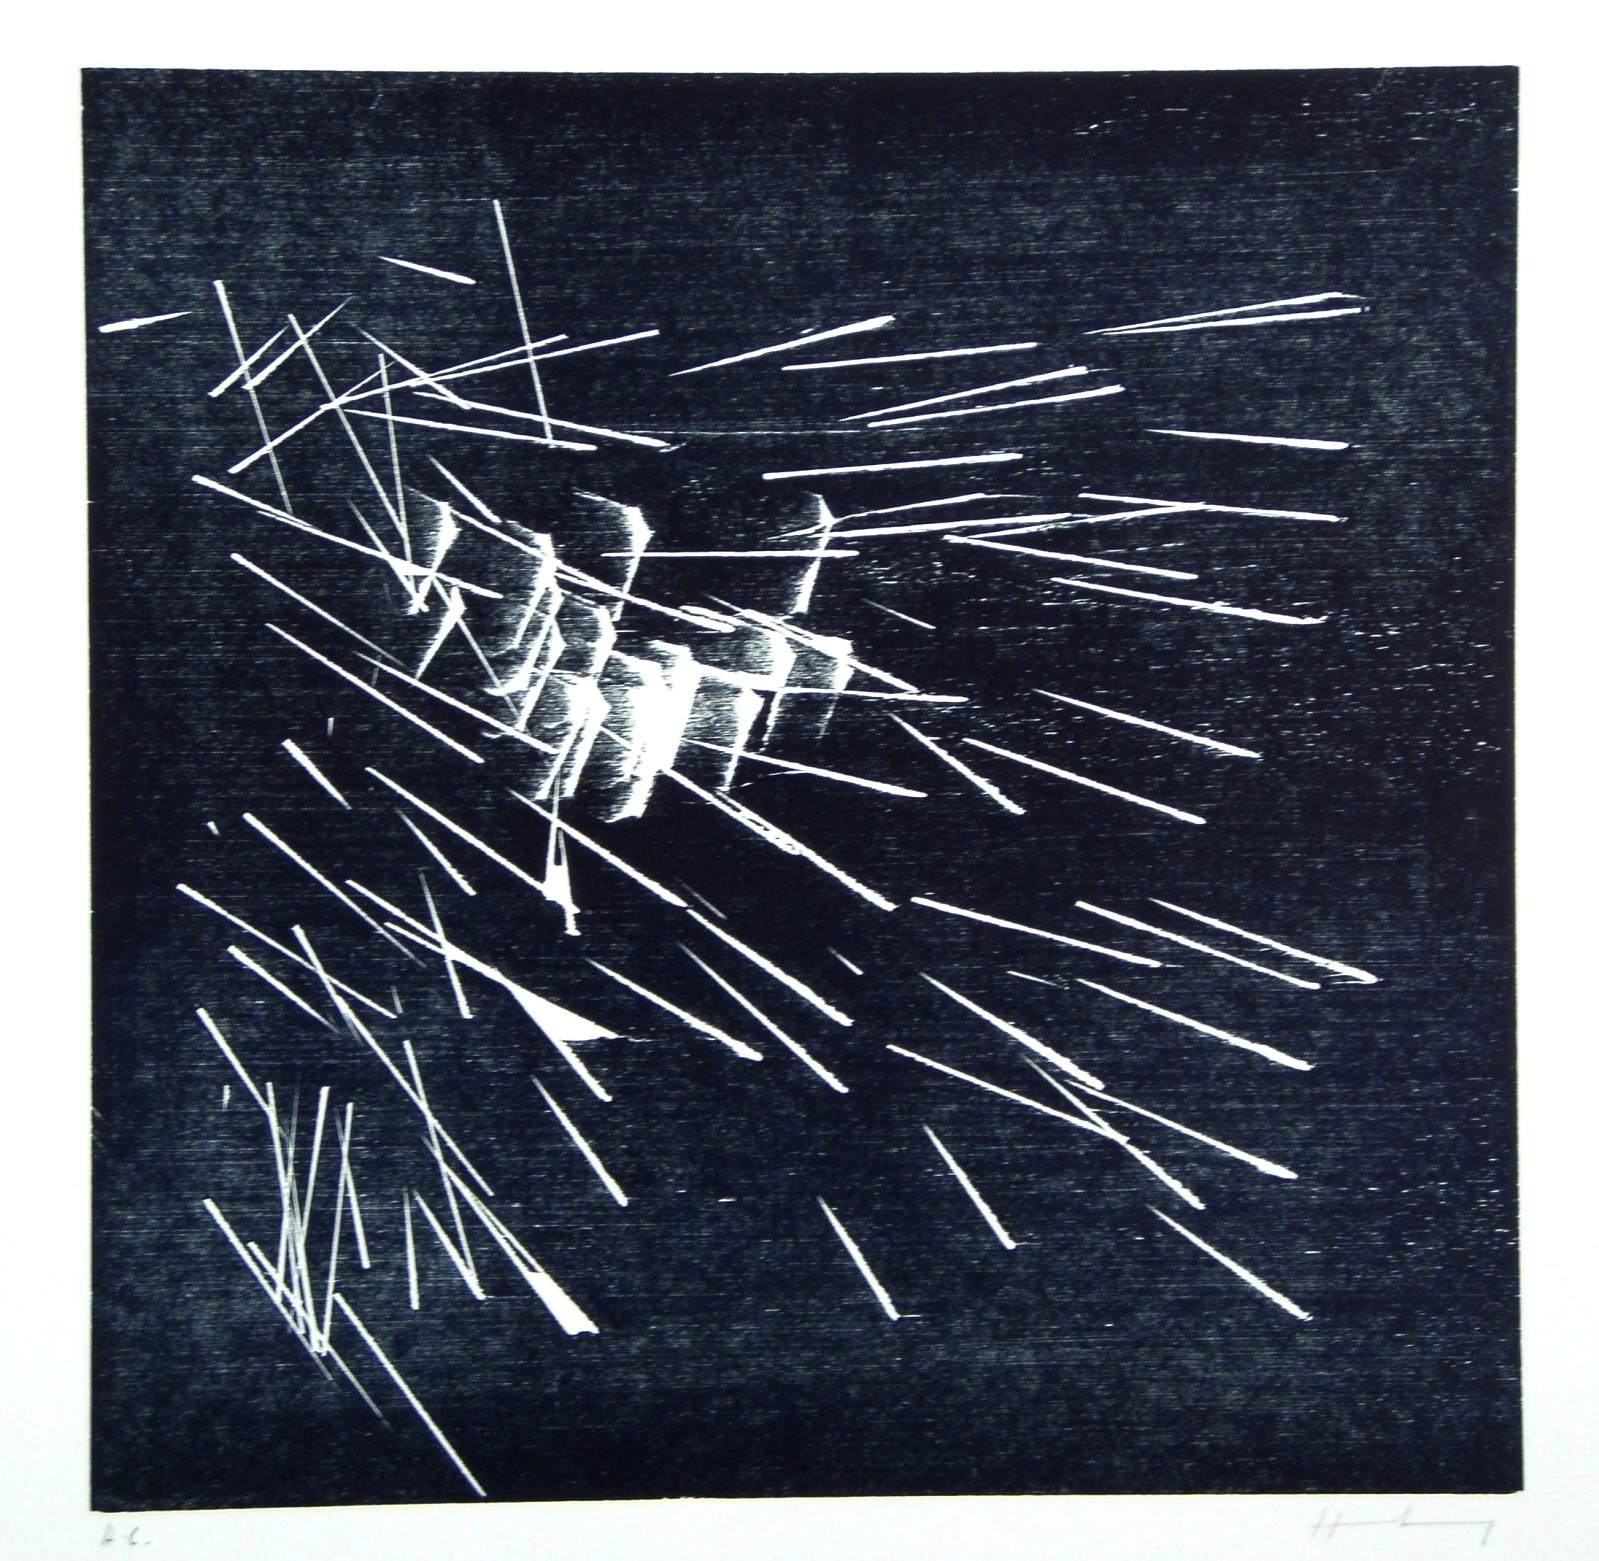 H-22-1973 by Hans Hartung